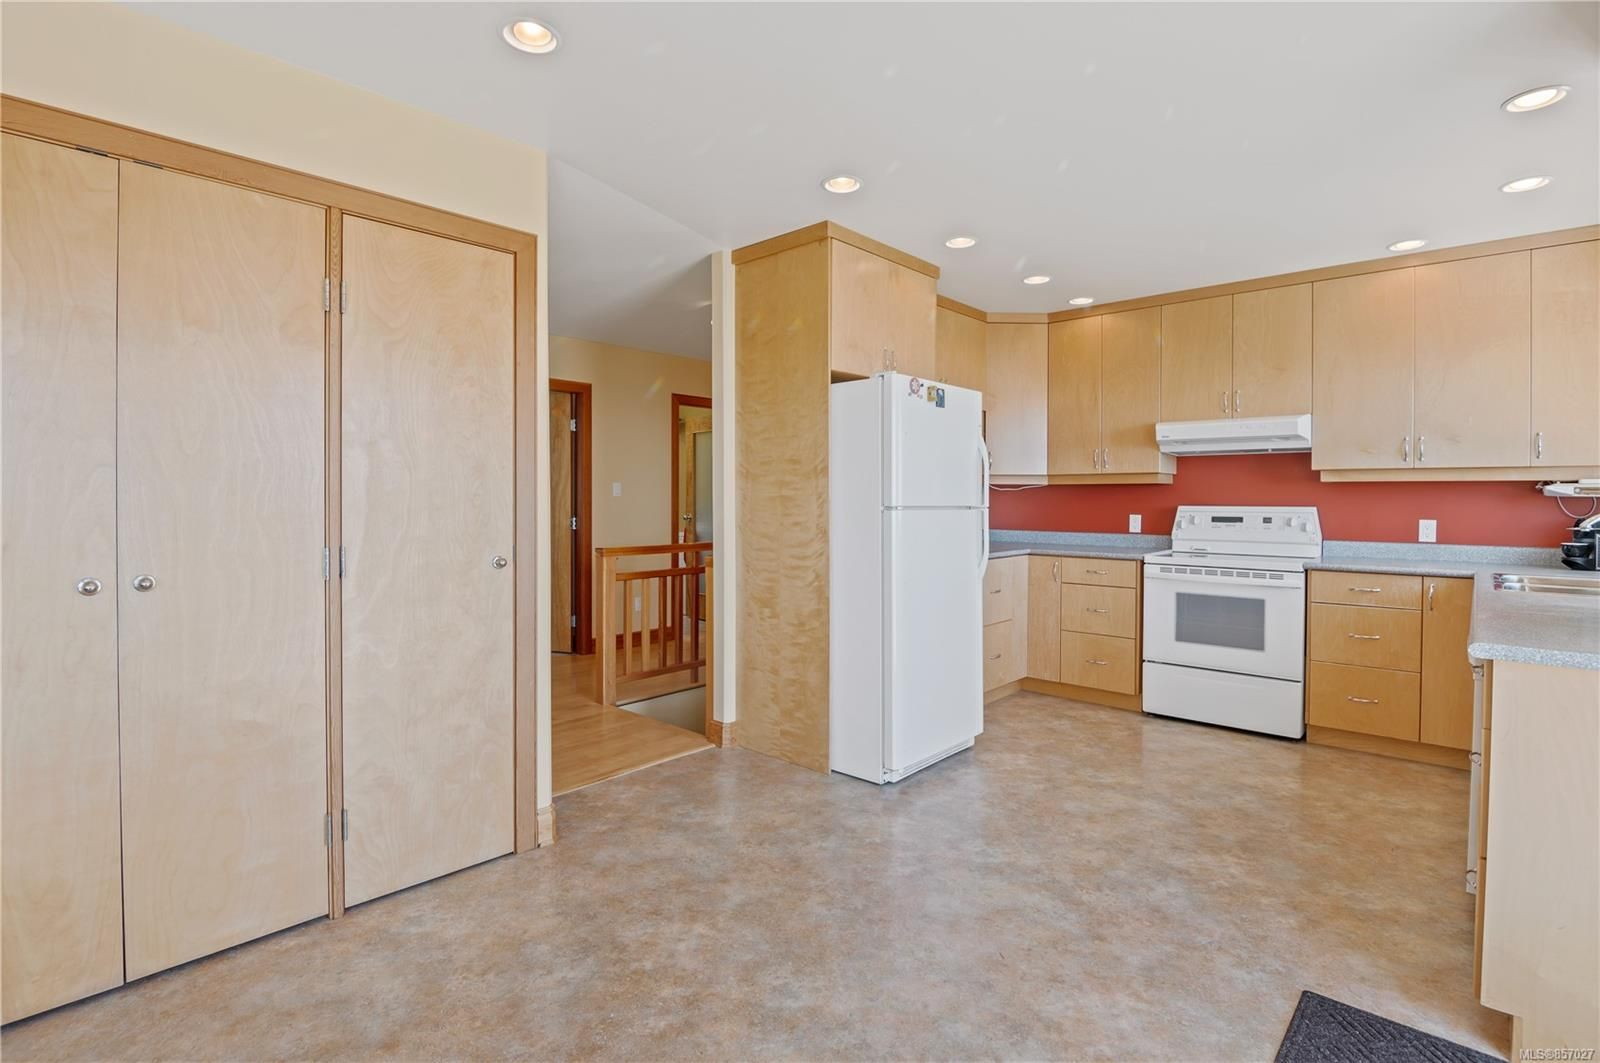 Photo 7: Photos: 253 S Alder St in : CR Campbell River South House for sale (Campbell River)  : MLS®# 857027